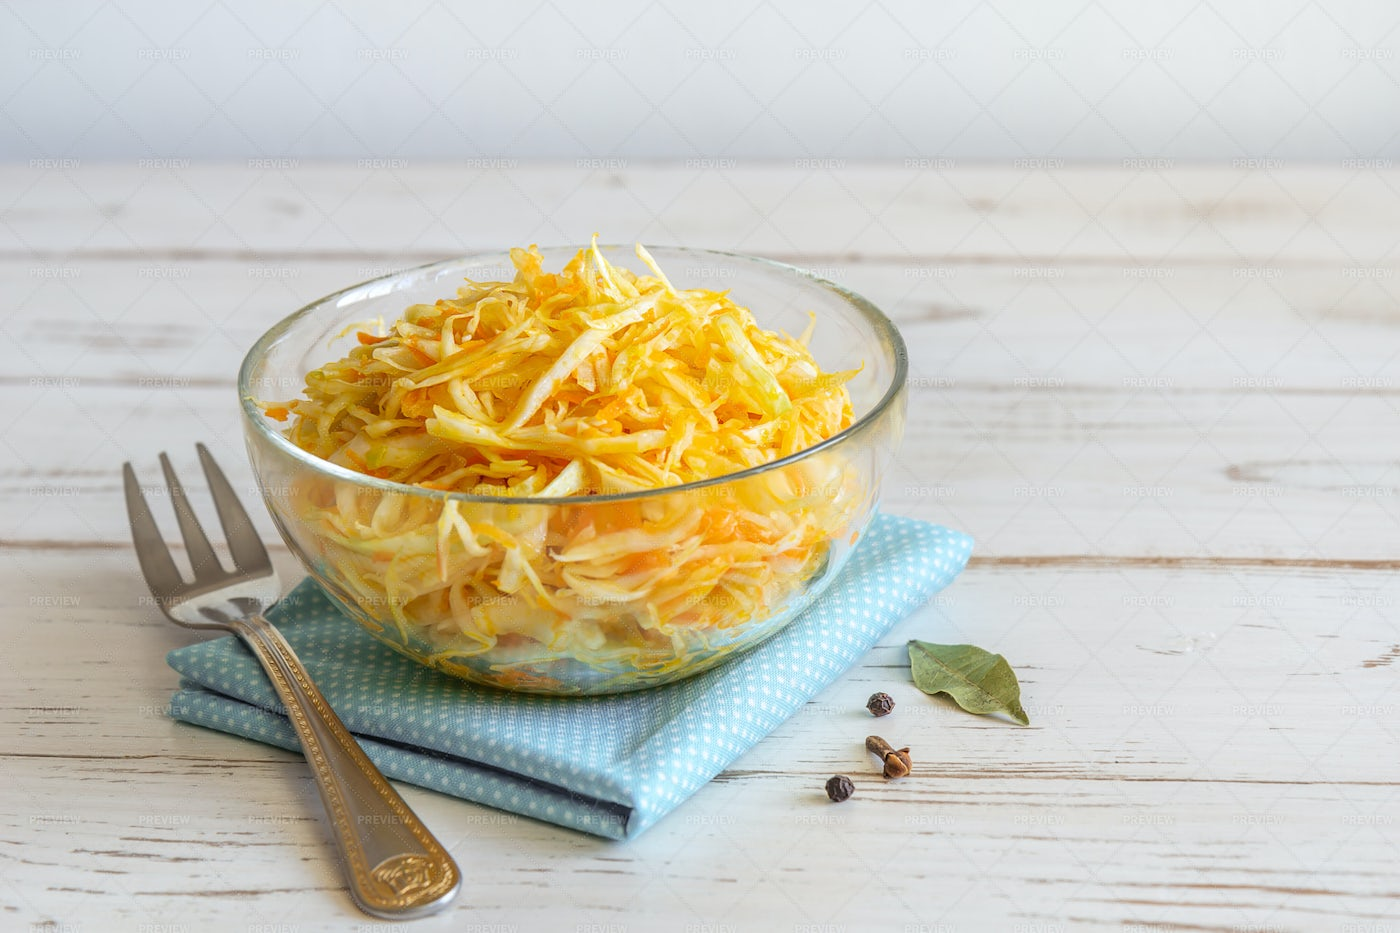 Pickled Cabbage With Carrots: Stock Photos